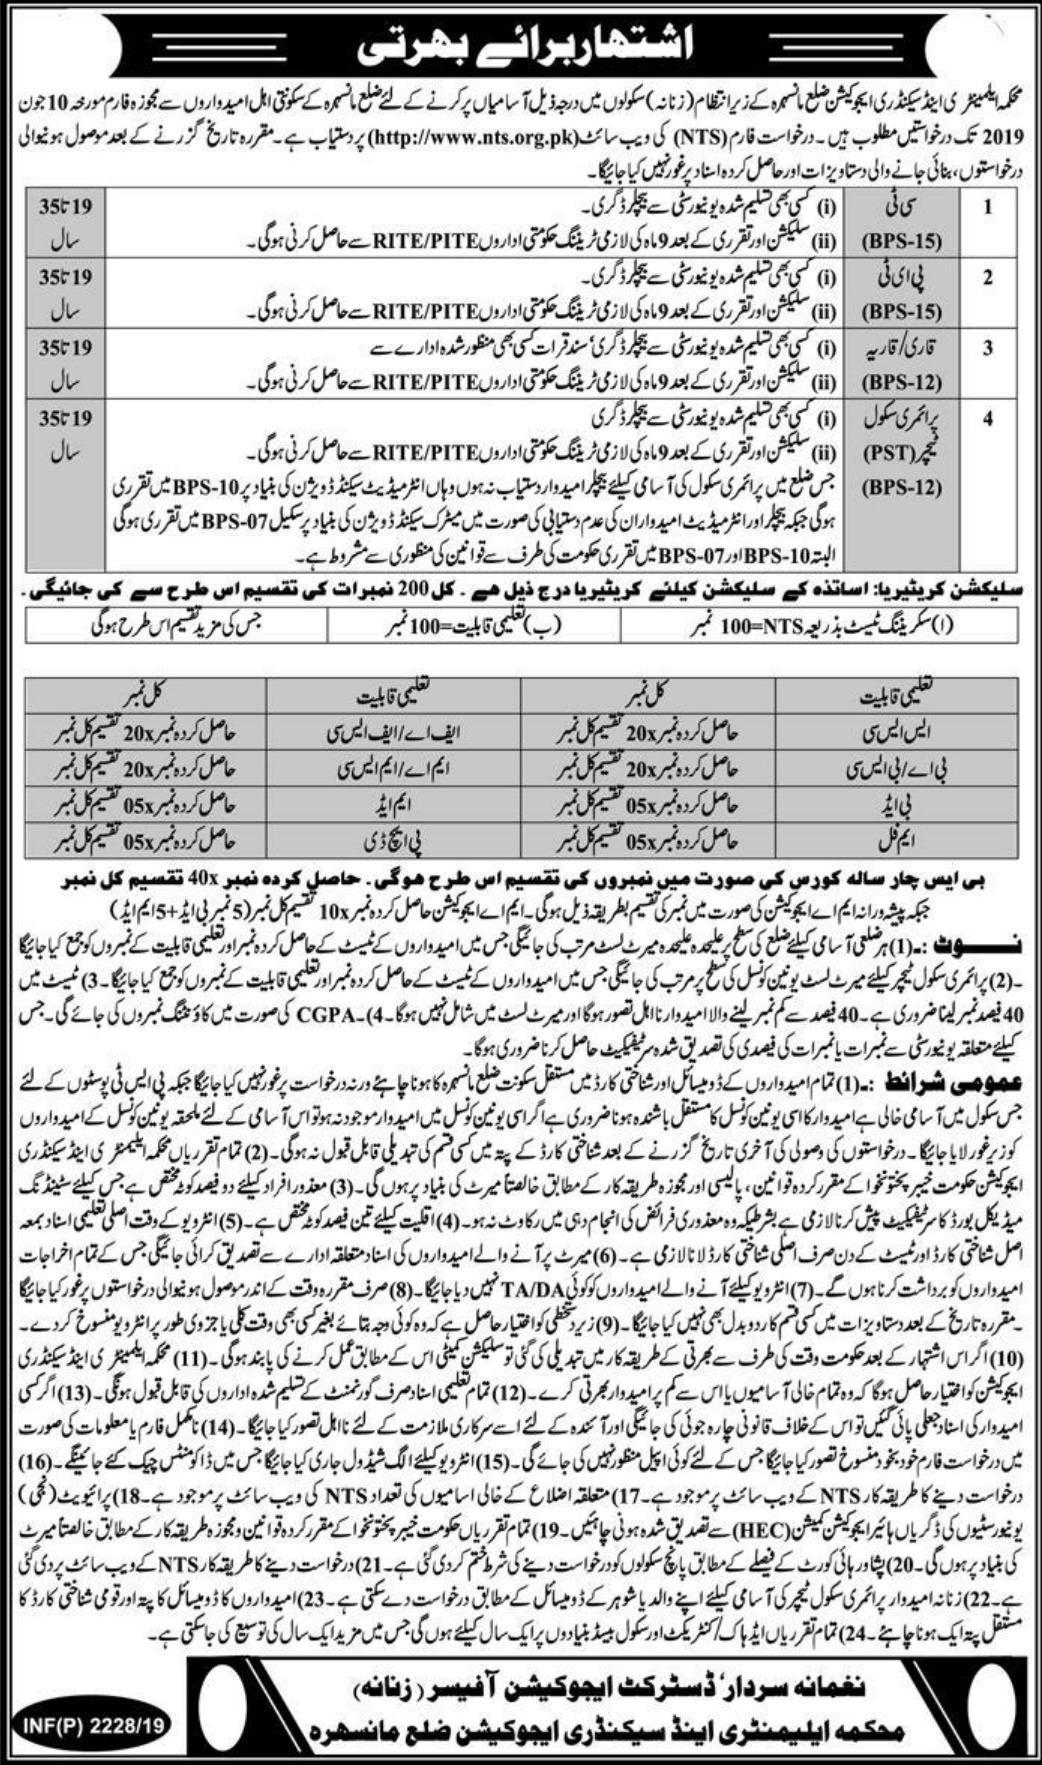 KPK Elementary & Secondary Education Department ESED Jobs 2019 Mansehra